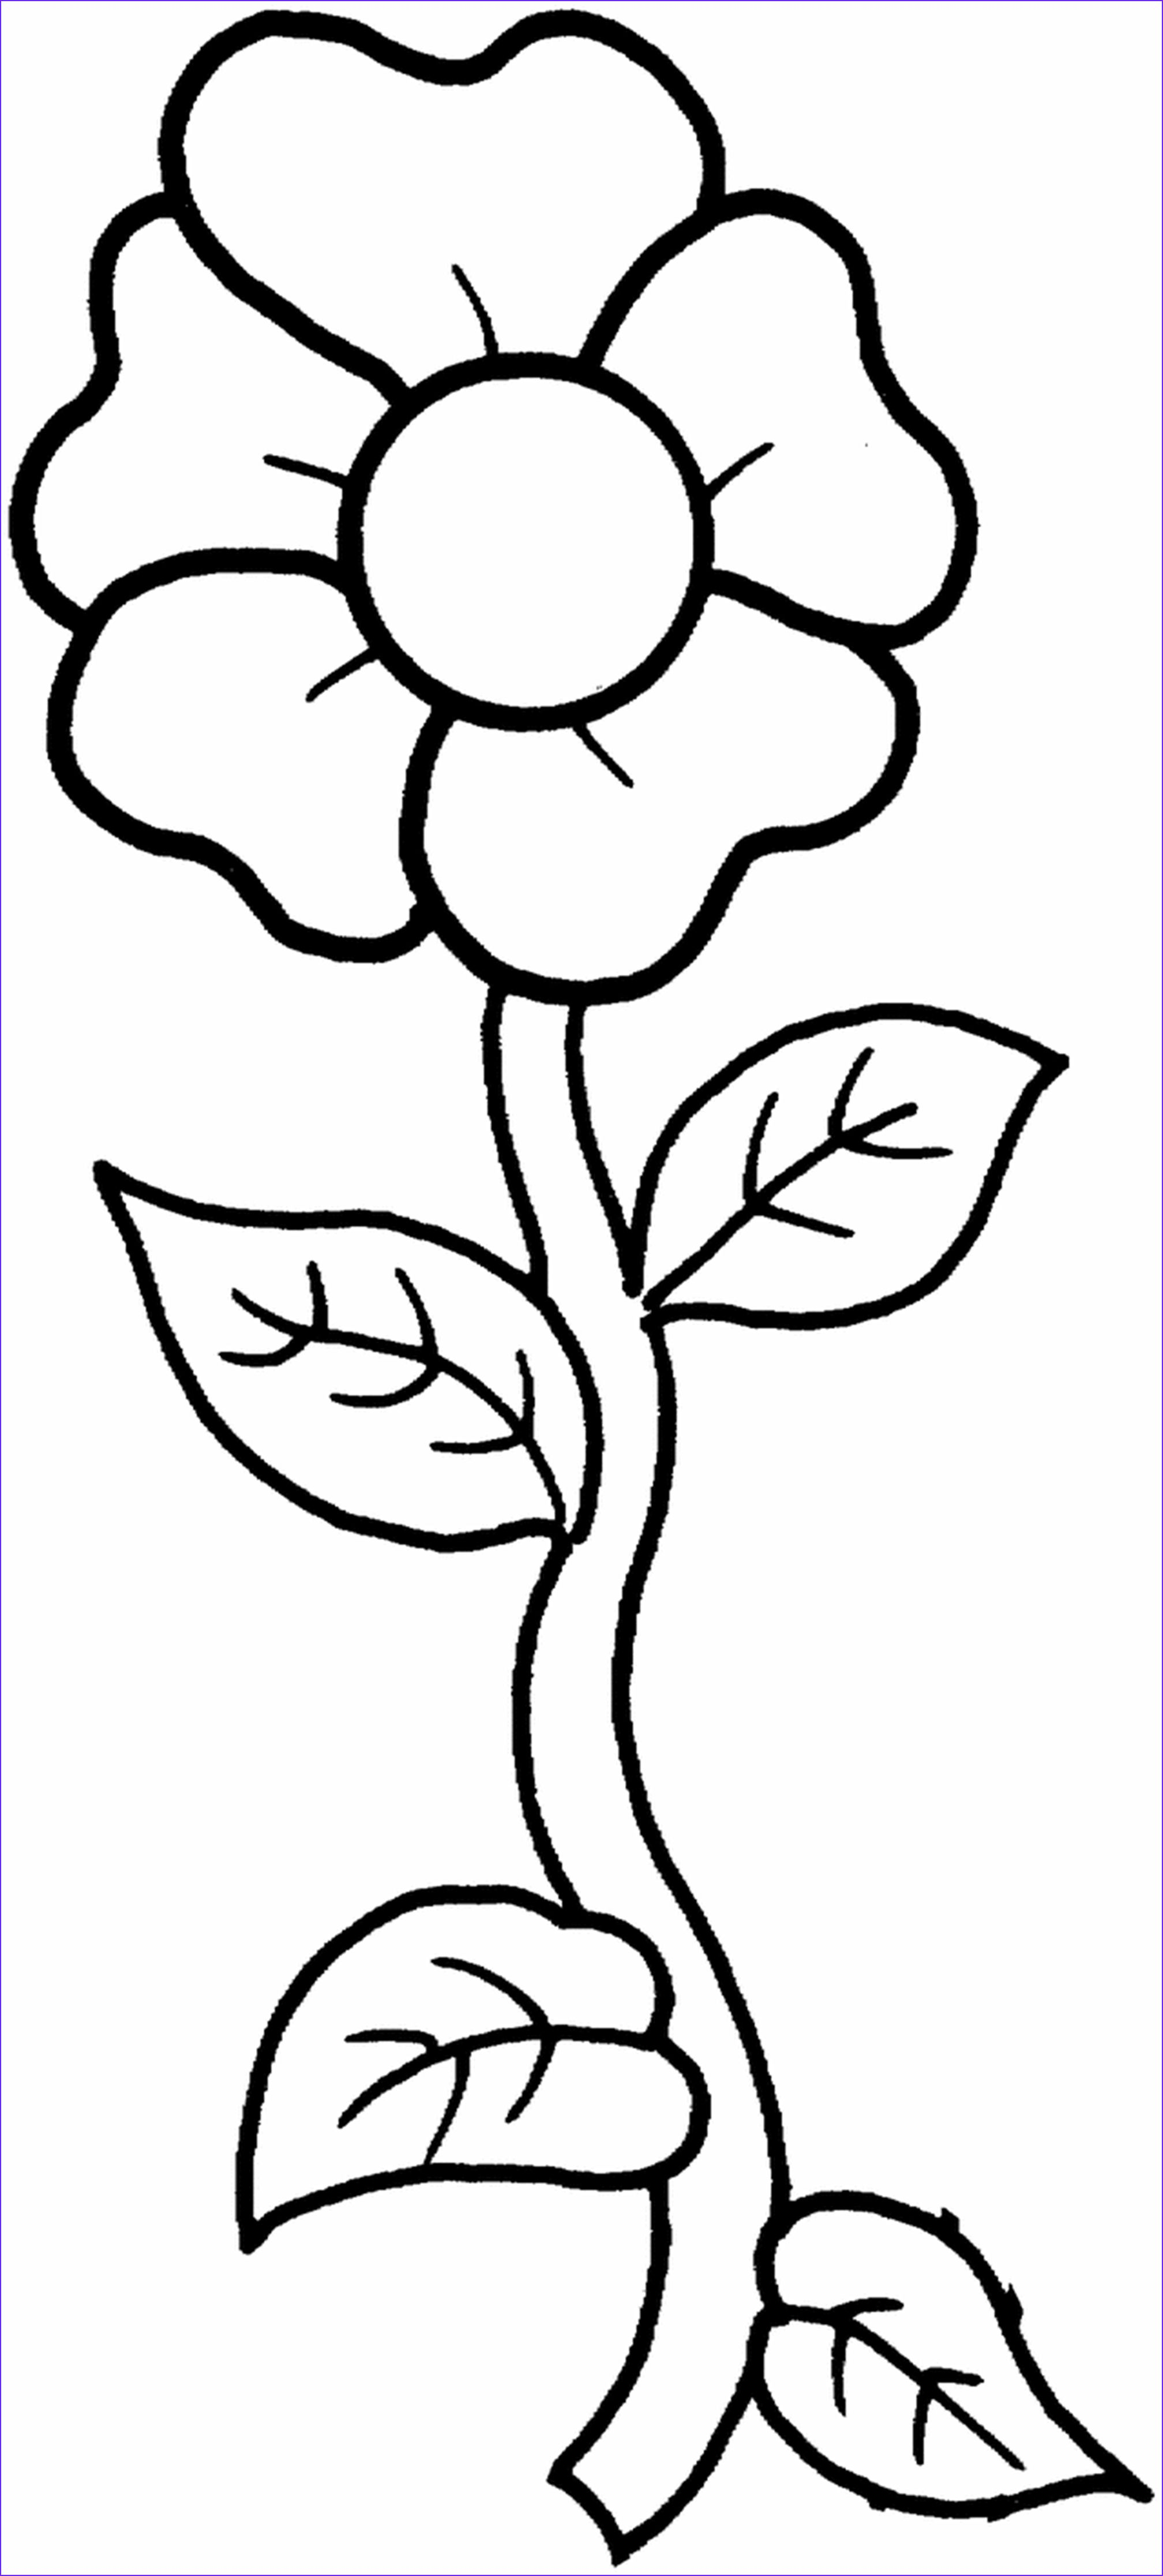 Free Printable Flower Coloring Pages For Kids Best  Flower